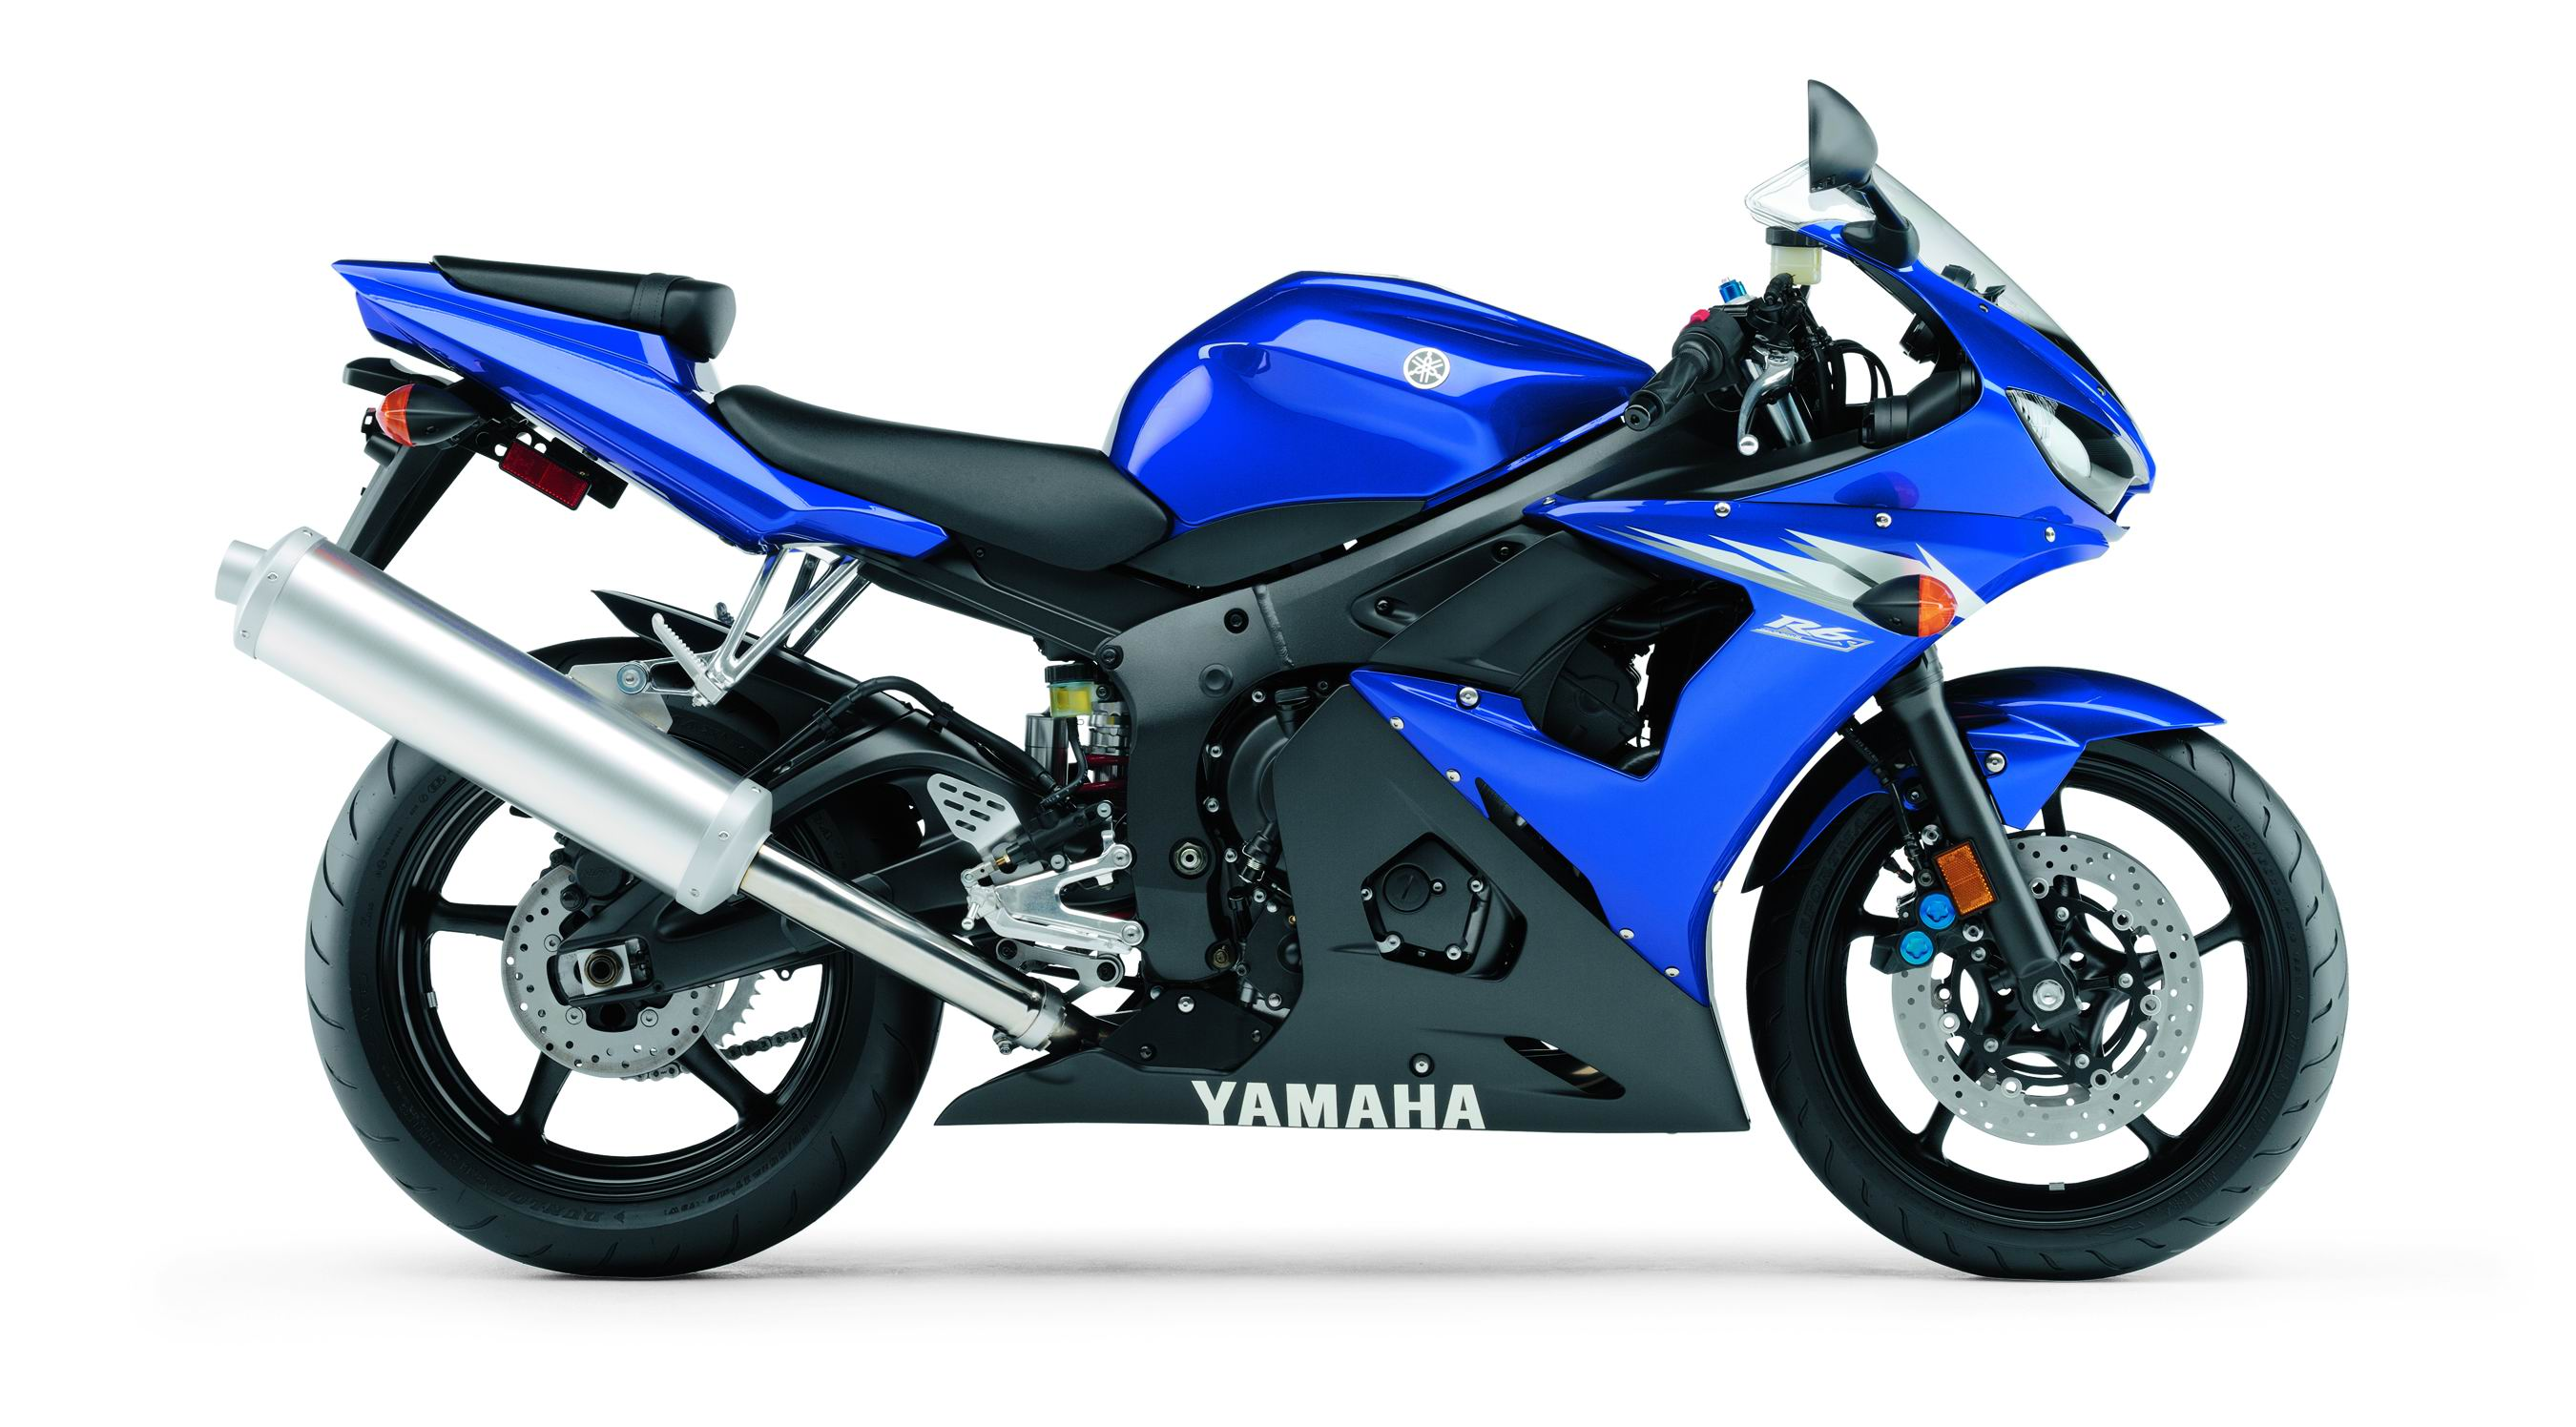 2006 yamaha yzf r6s review gallery top speed for 2006 yamaha yzf r6